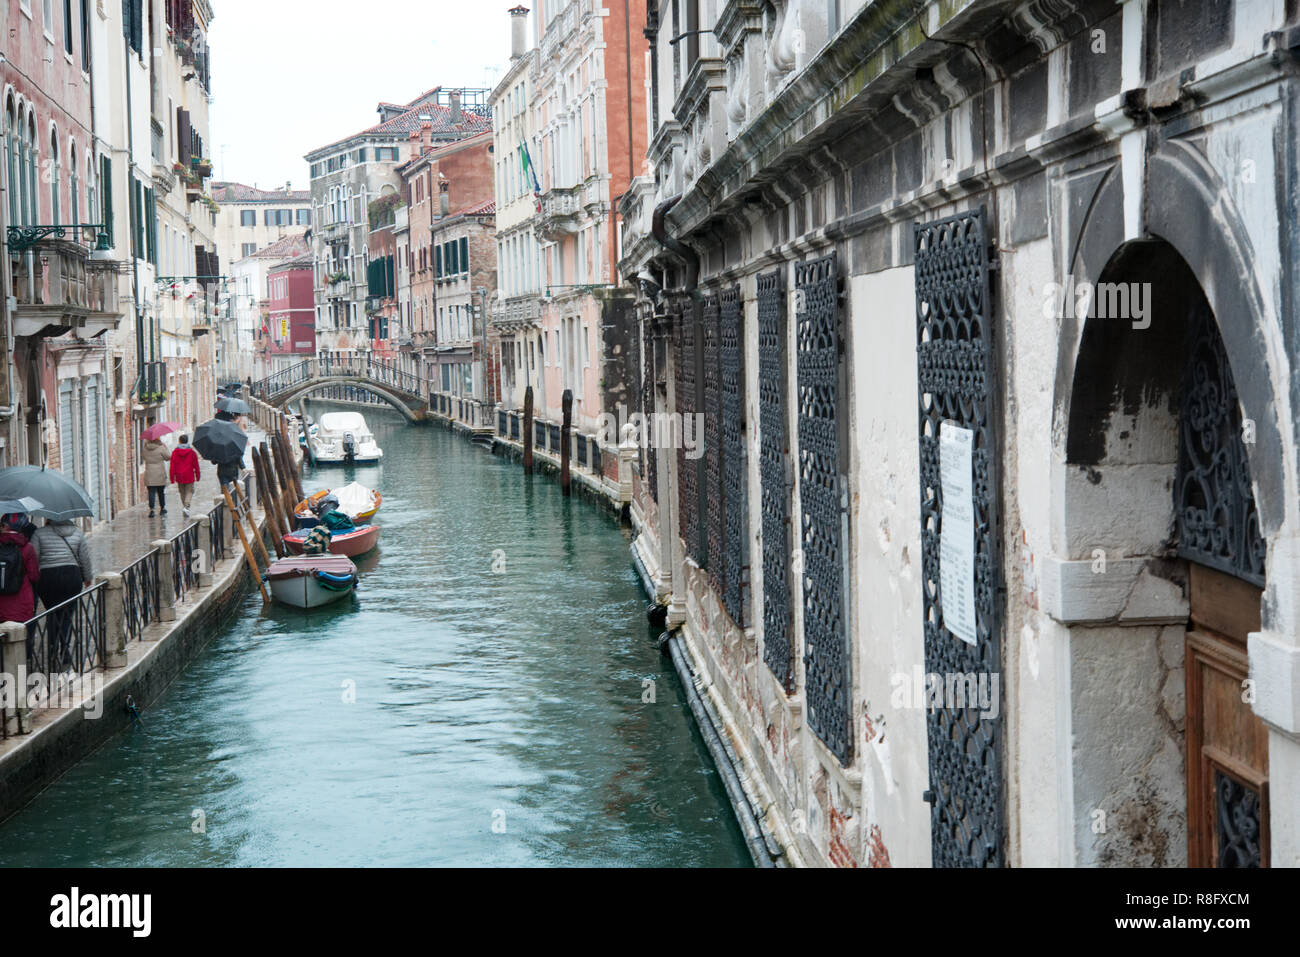 Venice la Sérénissime. Discovery of the city with canals, gondolas and its buildings - Stock Image